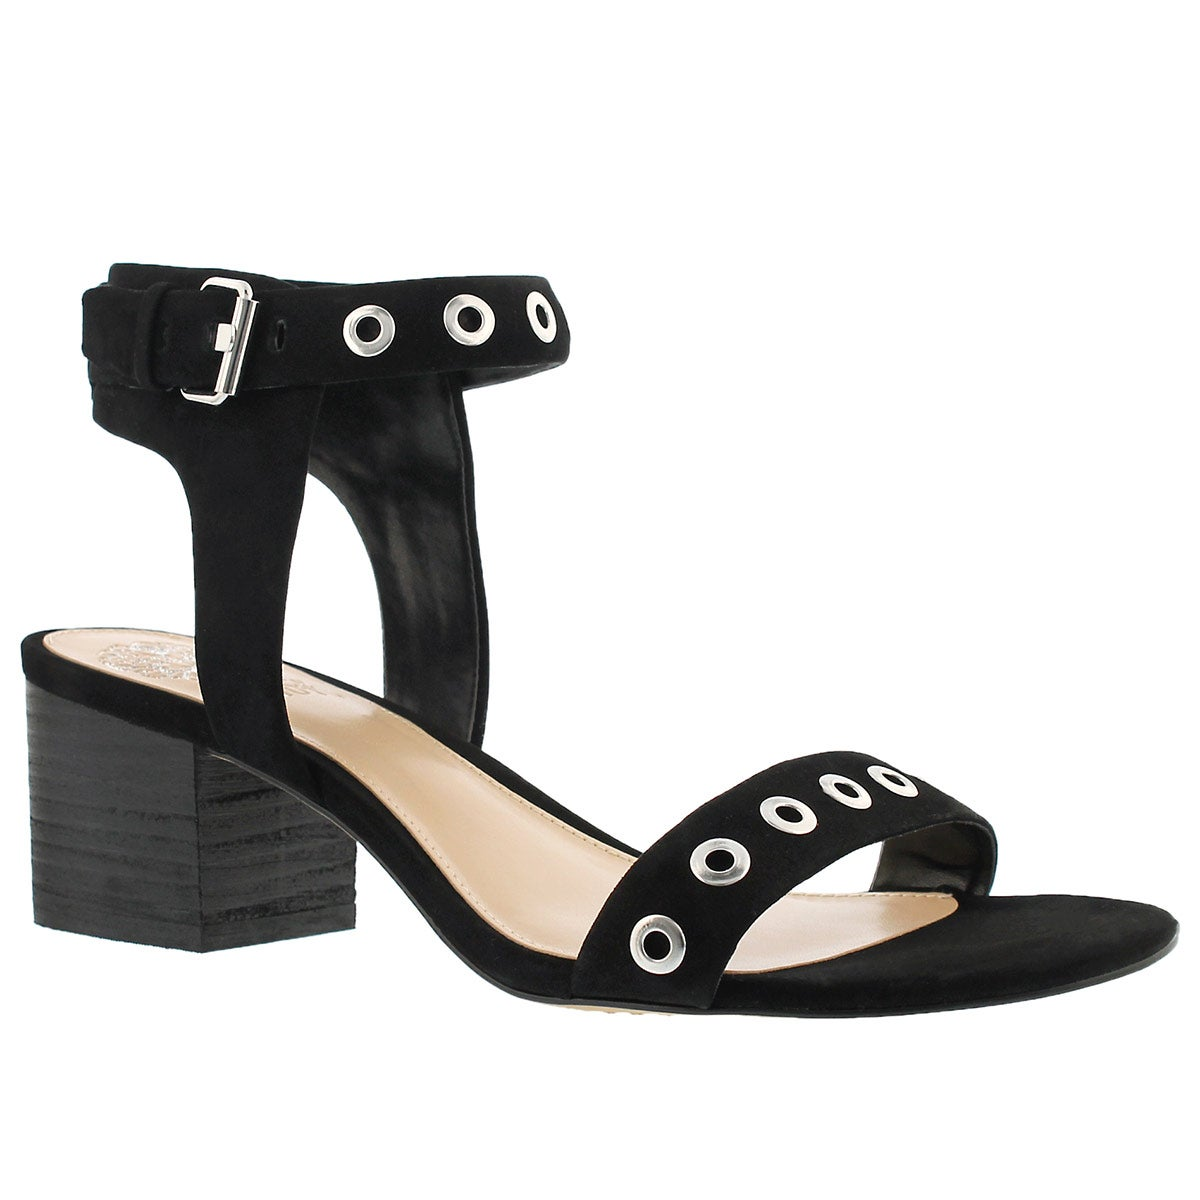 Women's FEYA black dress sandals